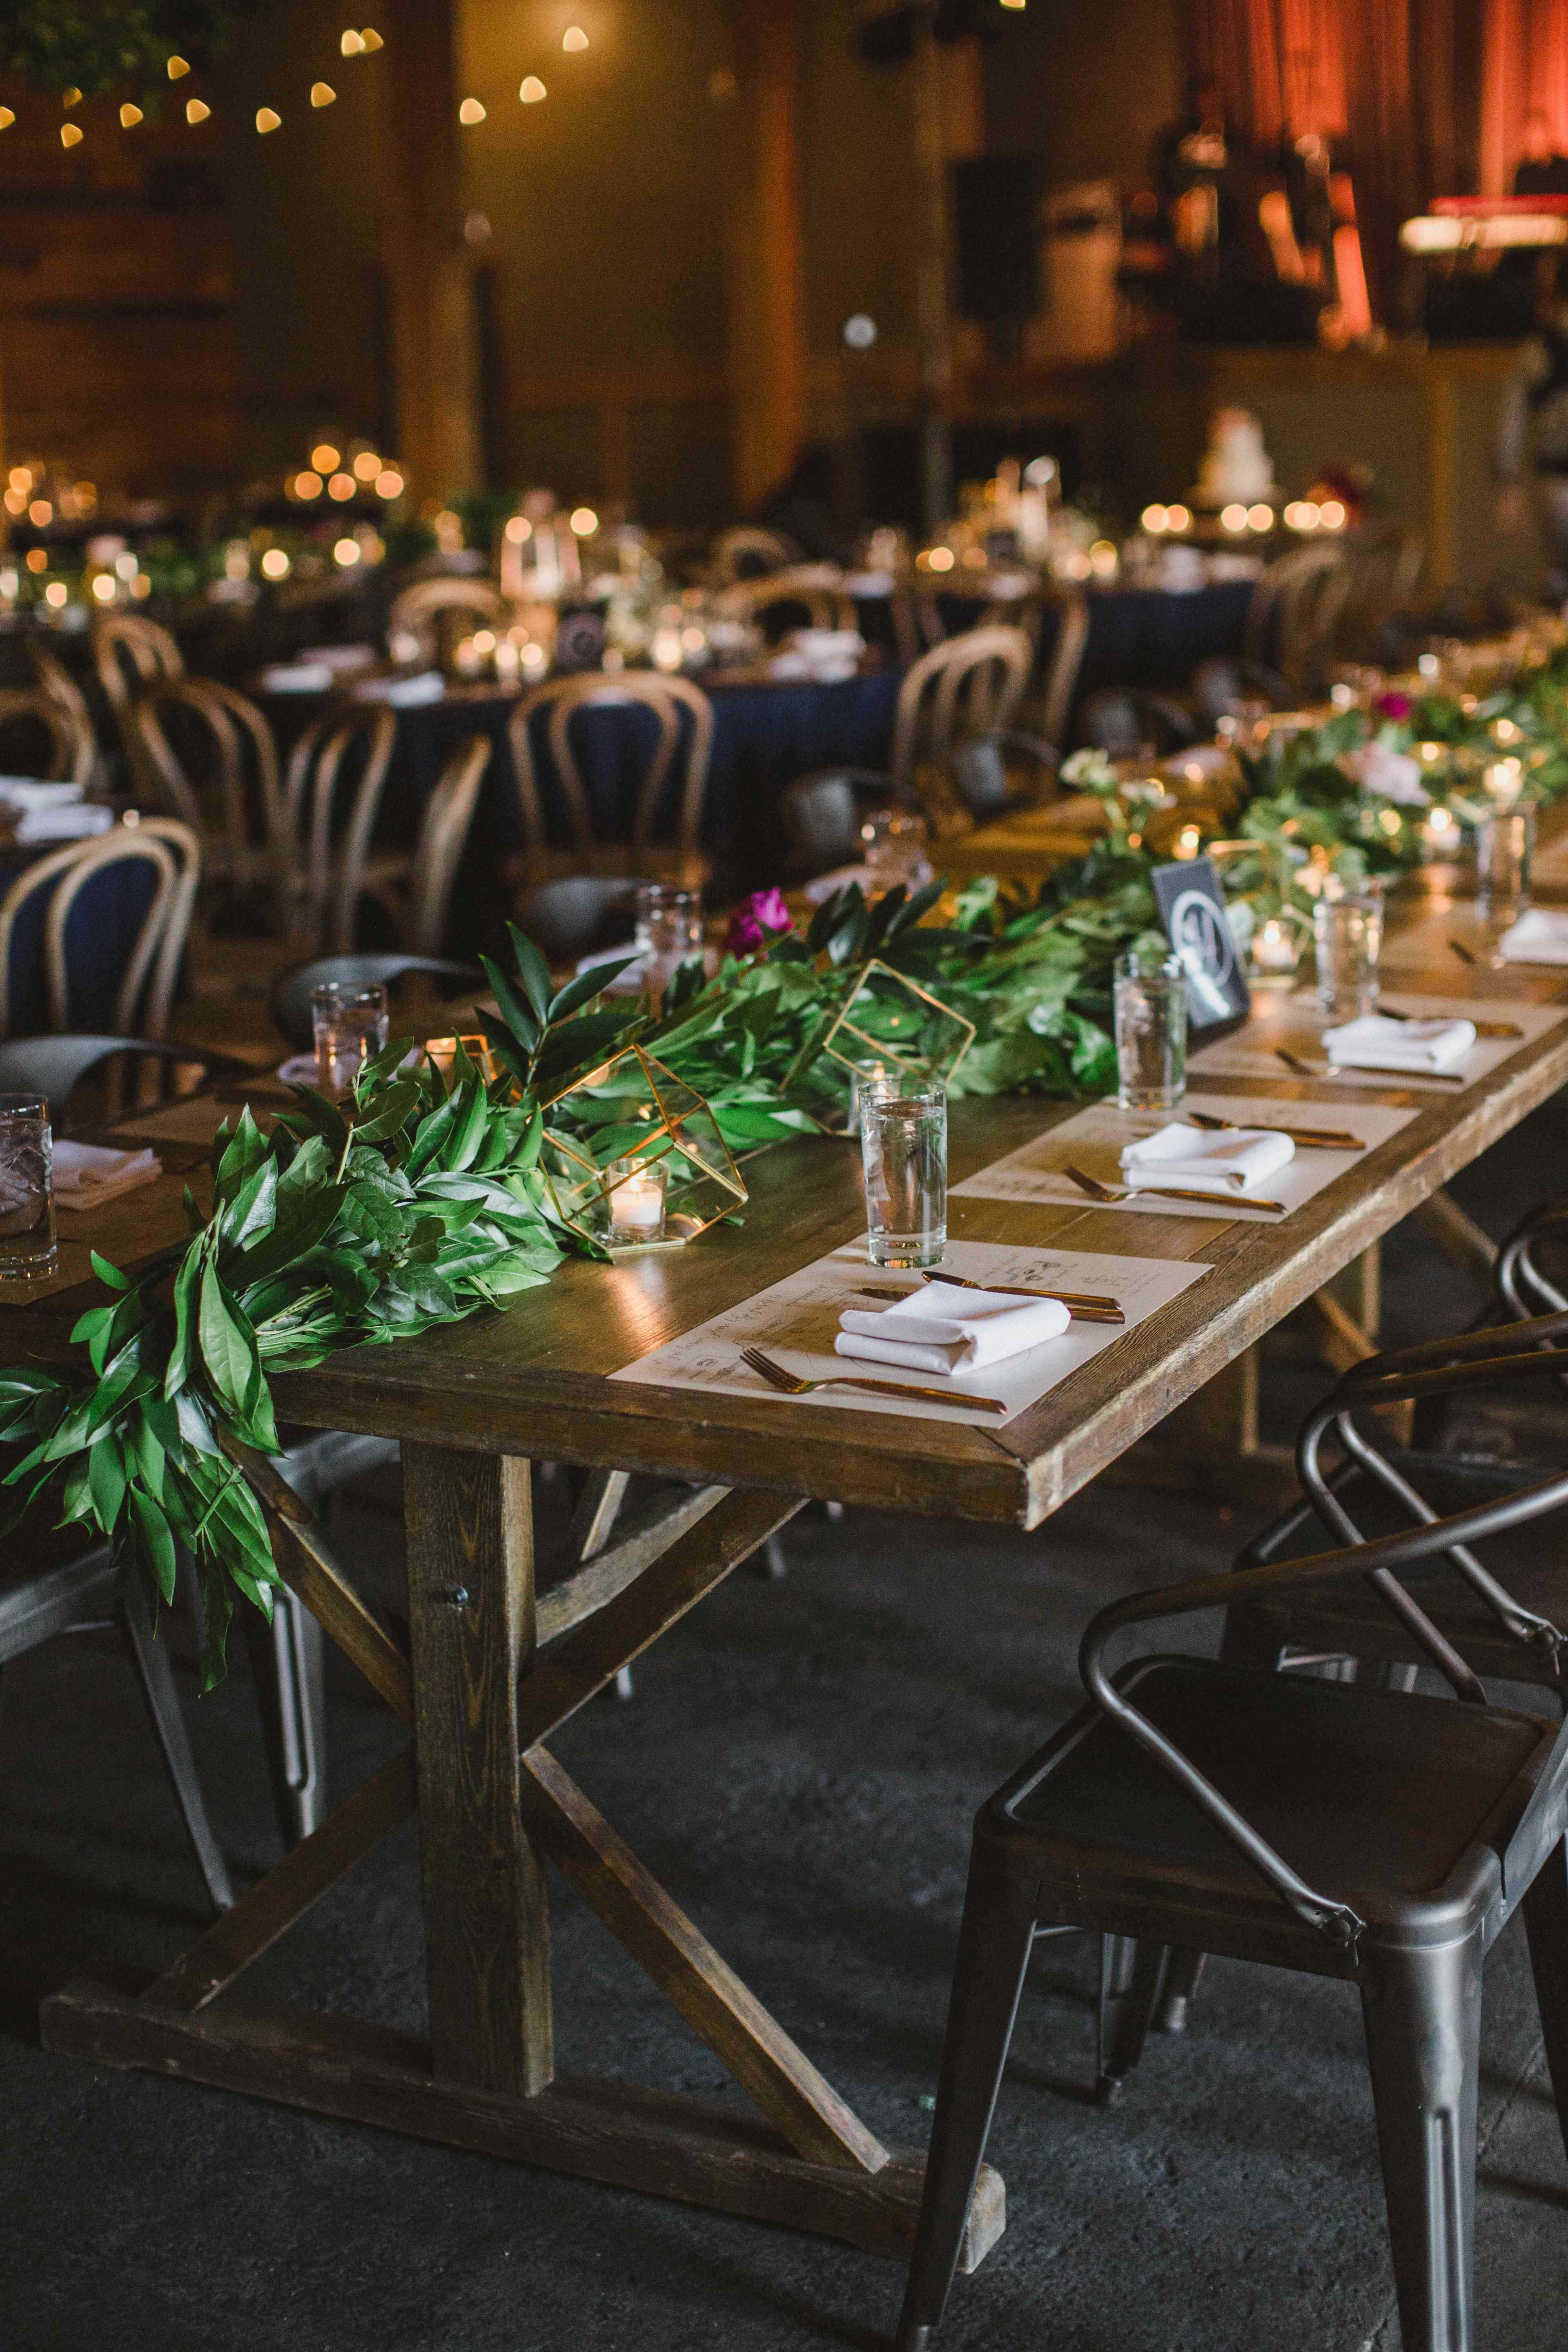 A simple table setup with greens in the middle